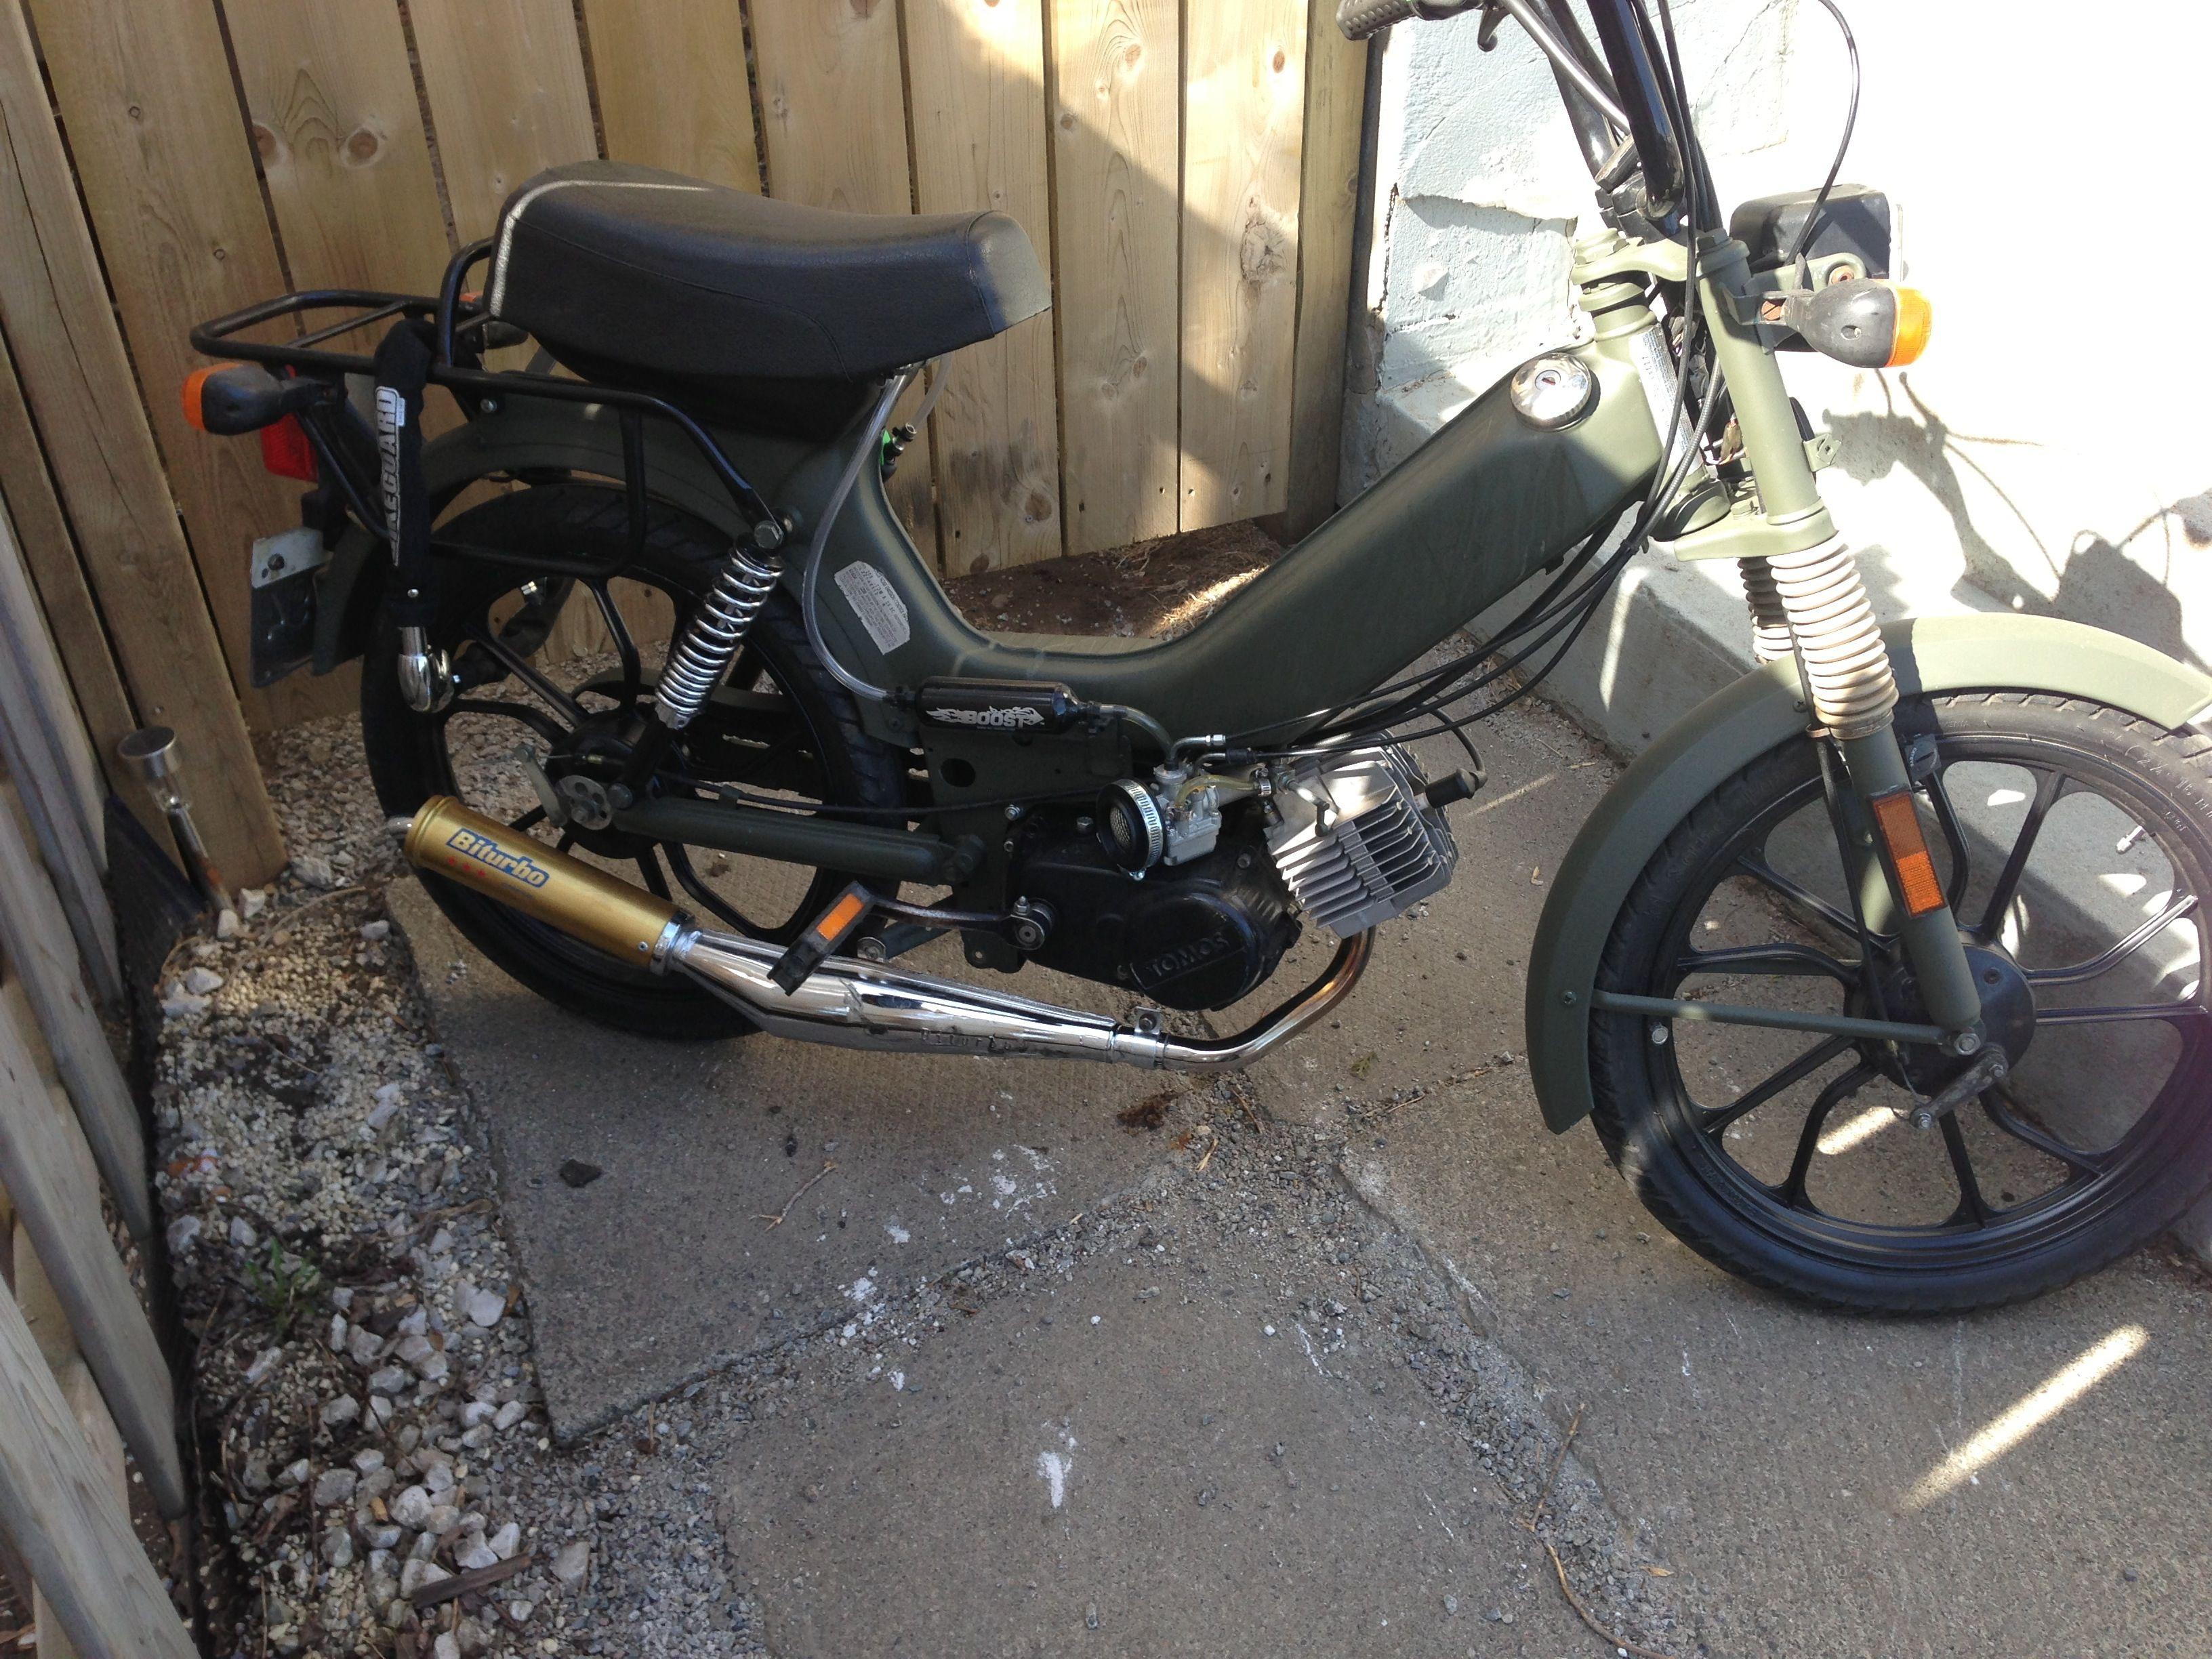 01 Tomos moped   70 cc big bore, 21 mm intake with 17 mm